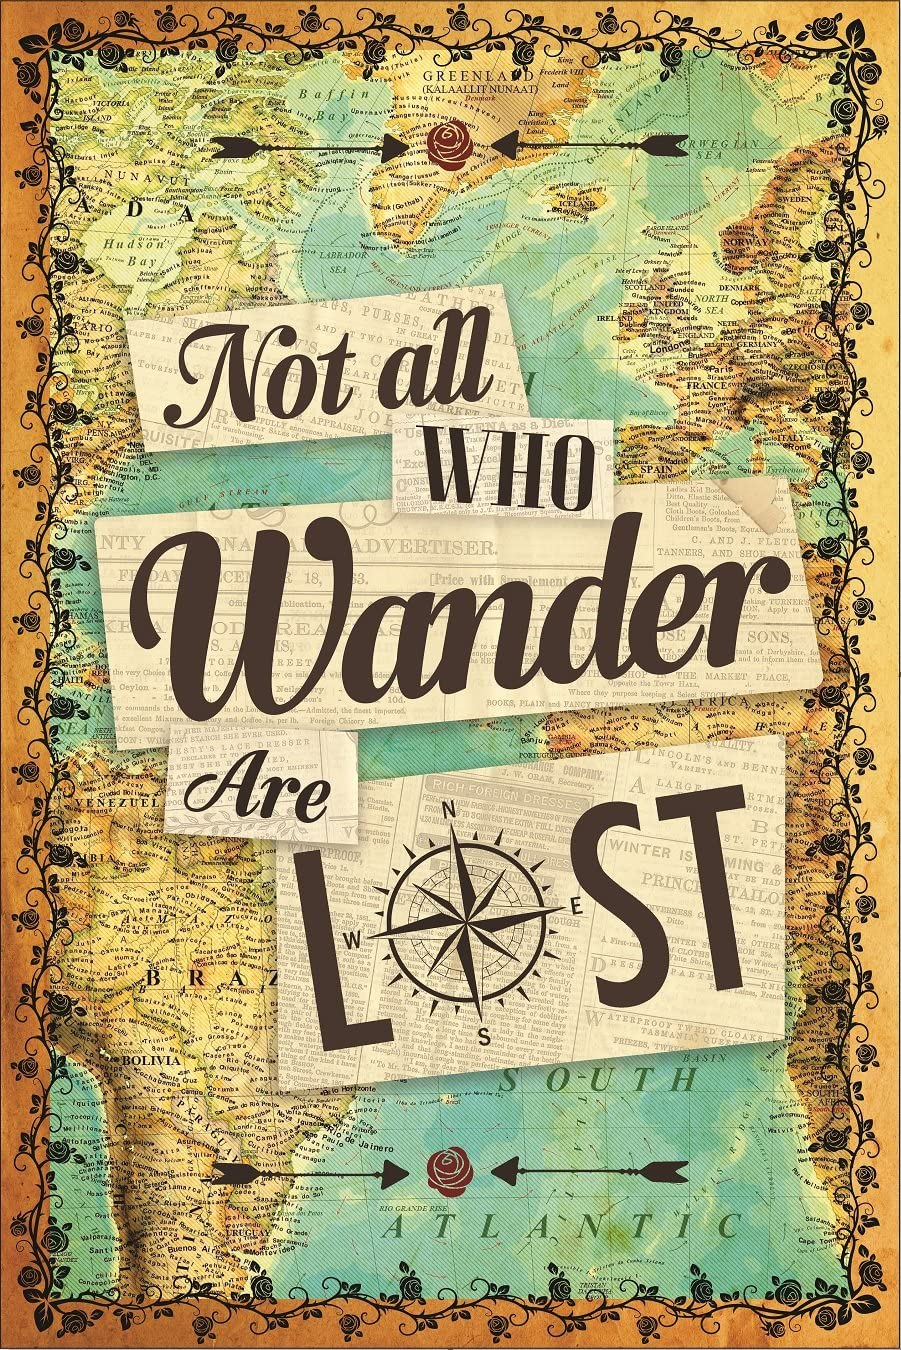 Not All Who Wander Are Lost Wall Poster - Sized 12 x 18 inches - Beautiful Wanderlust Art Print Decor For Travelers